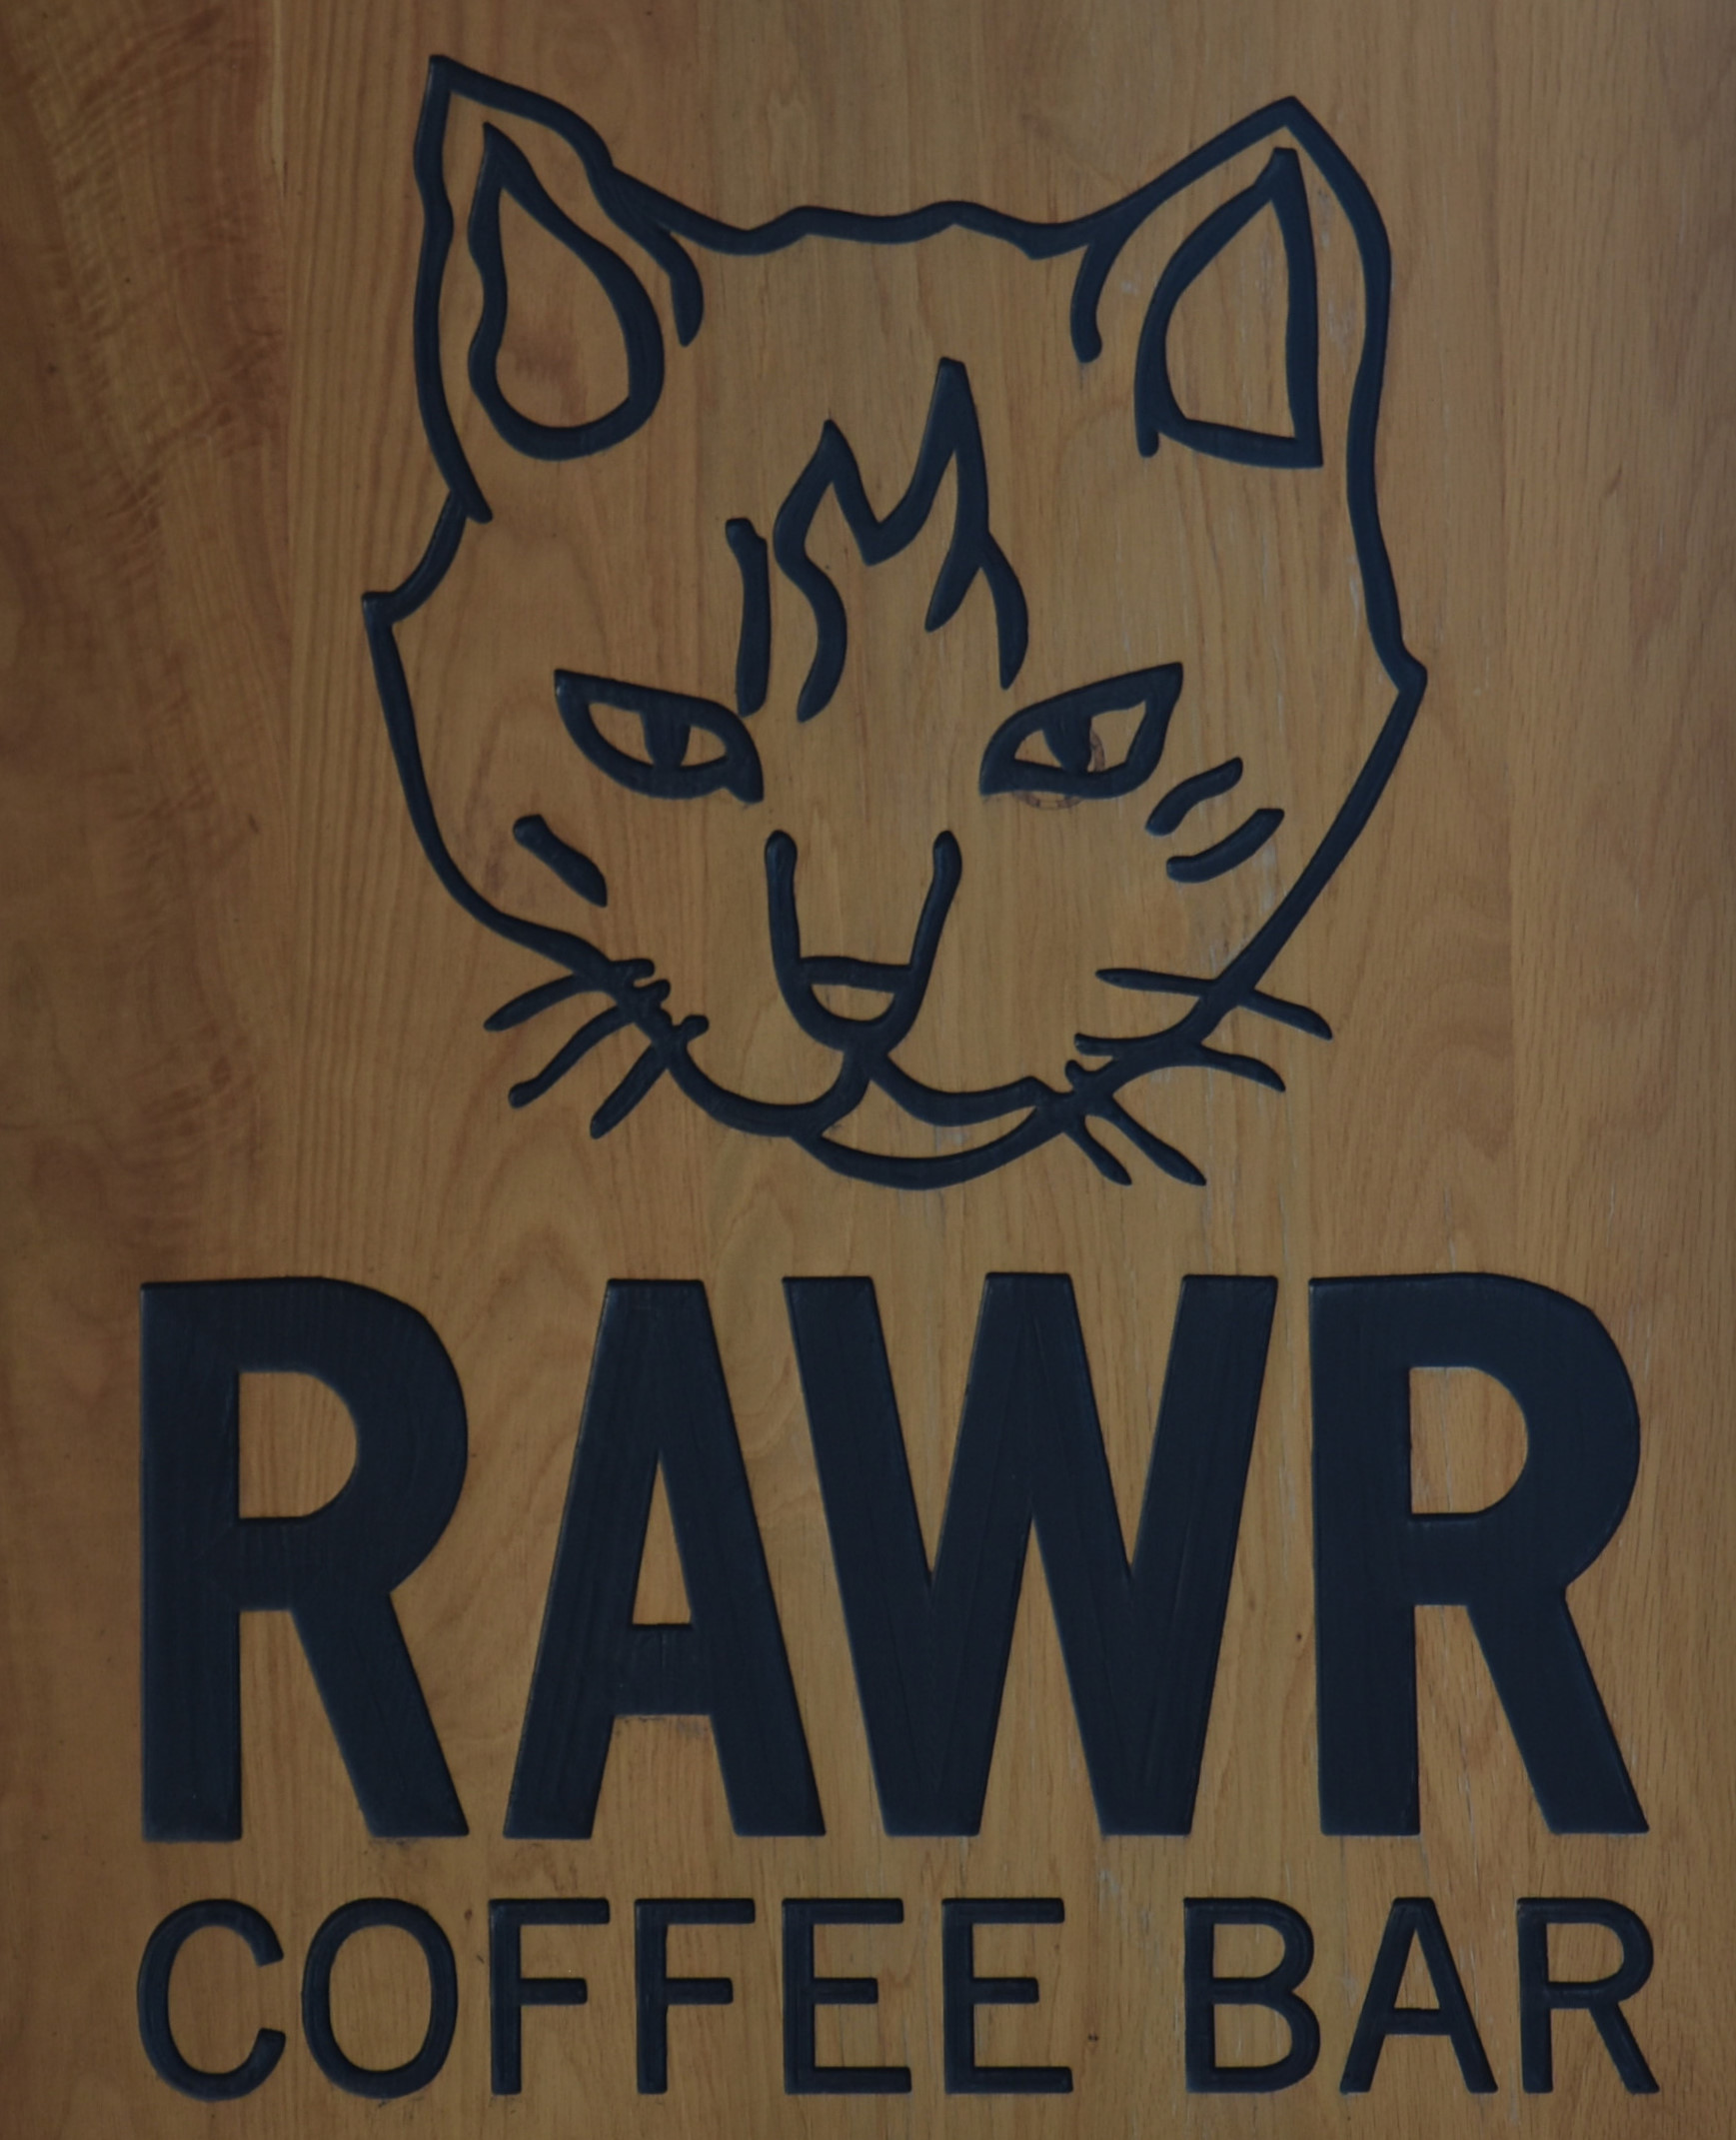 The sign hanging outside RAWR Coffee Bar, part of Cat Town in Oakland, California.